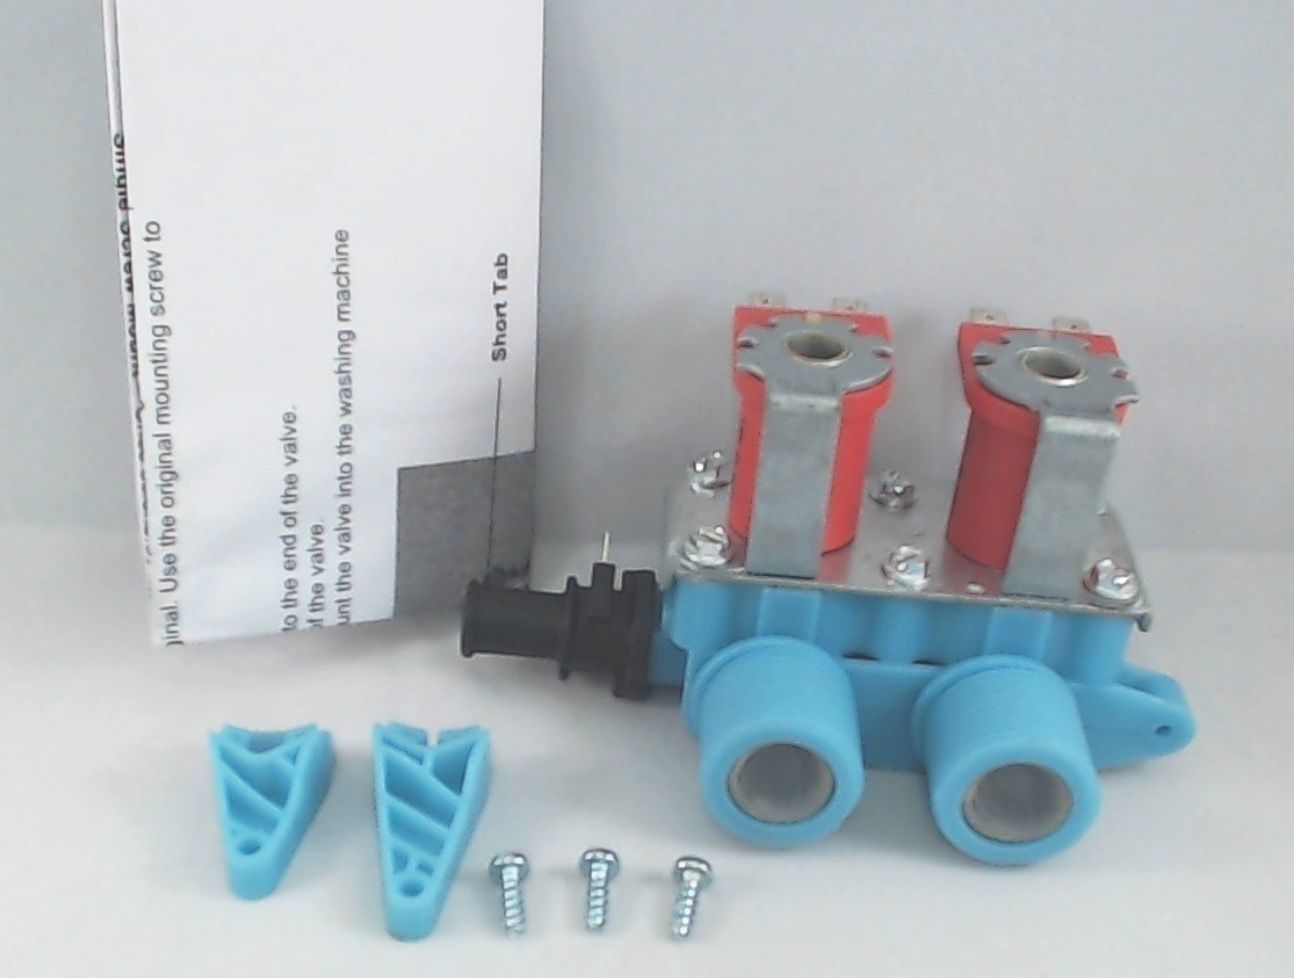 Washer Water Valve with Thermistor, for Whirlpool, AP3175369, PS731801, 3979346 eBay